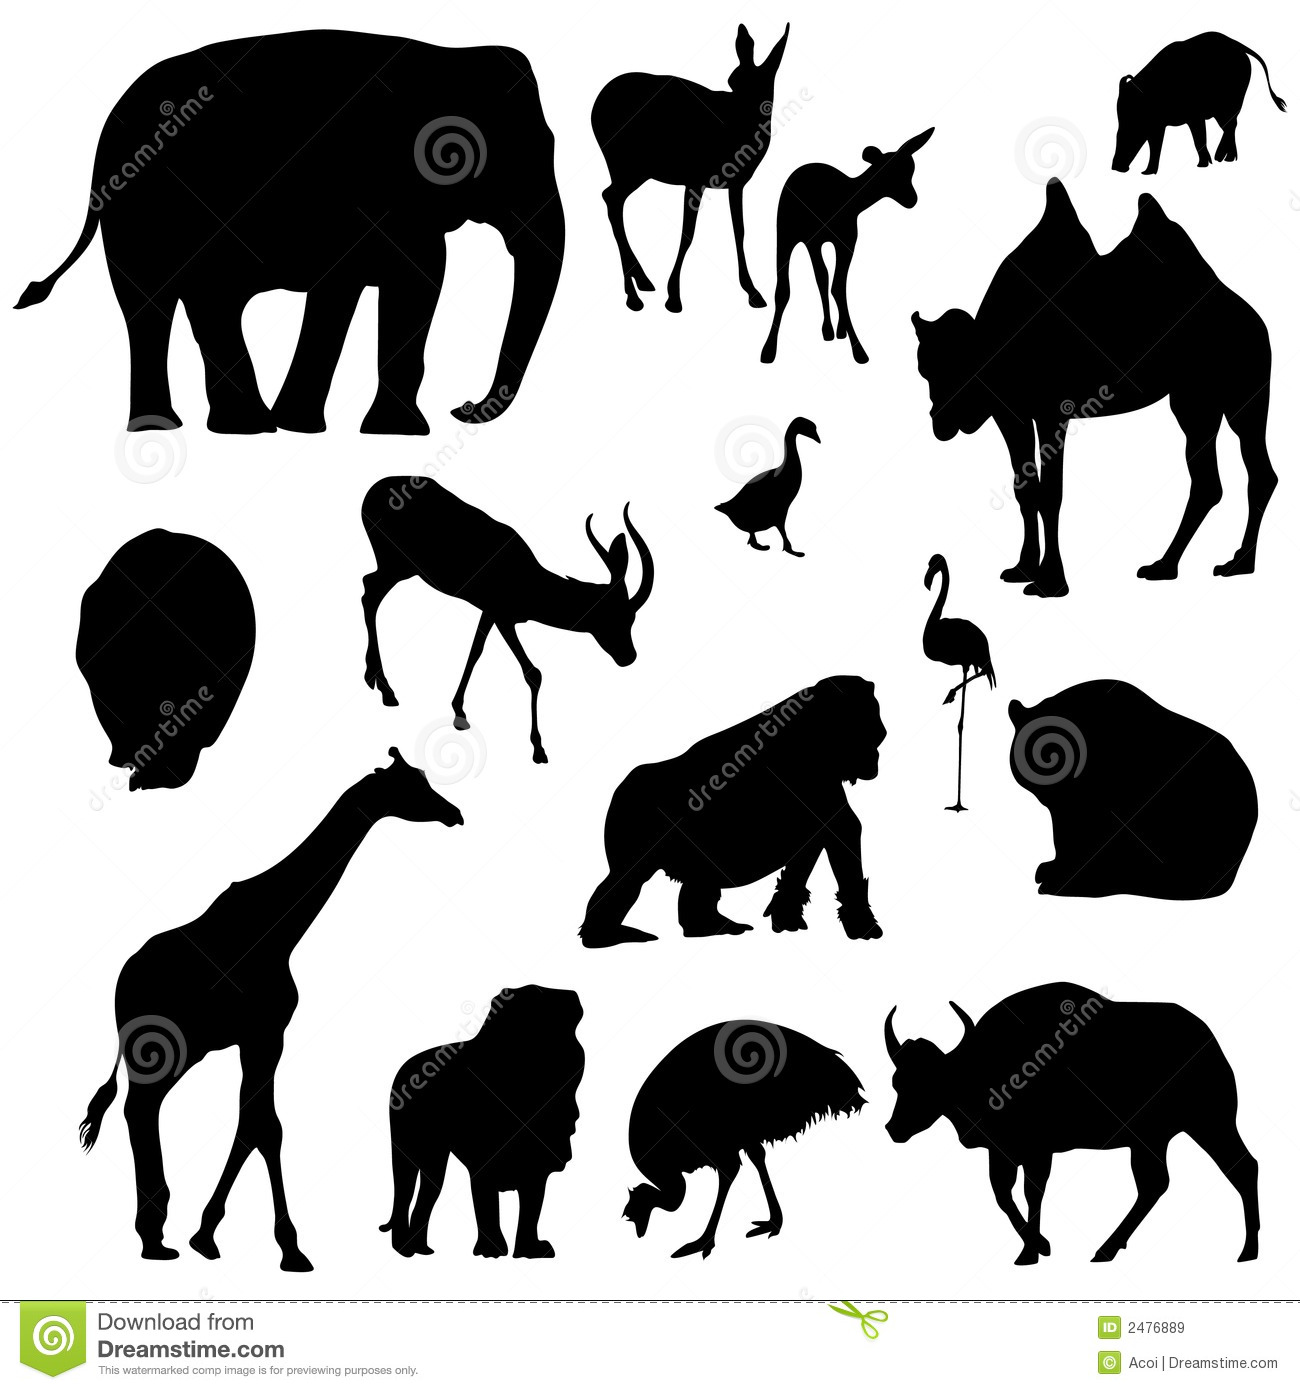 Animal Silhouettes Royalty Free Stock Images - Image: 2476889